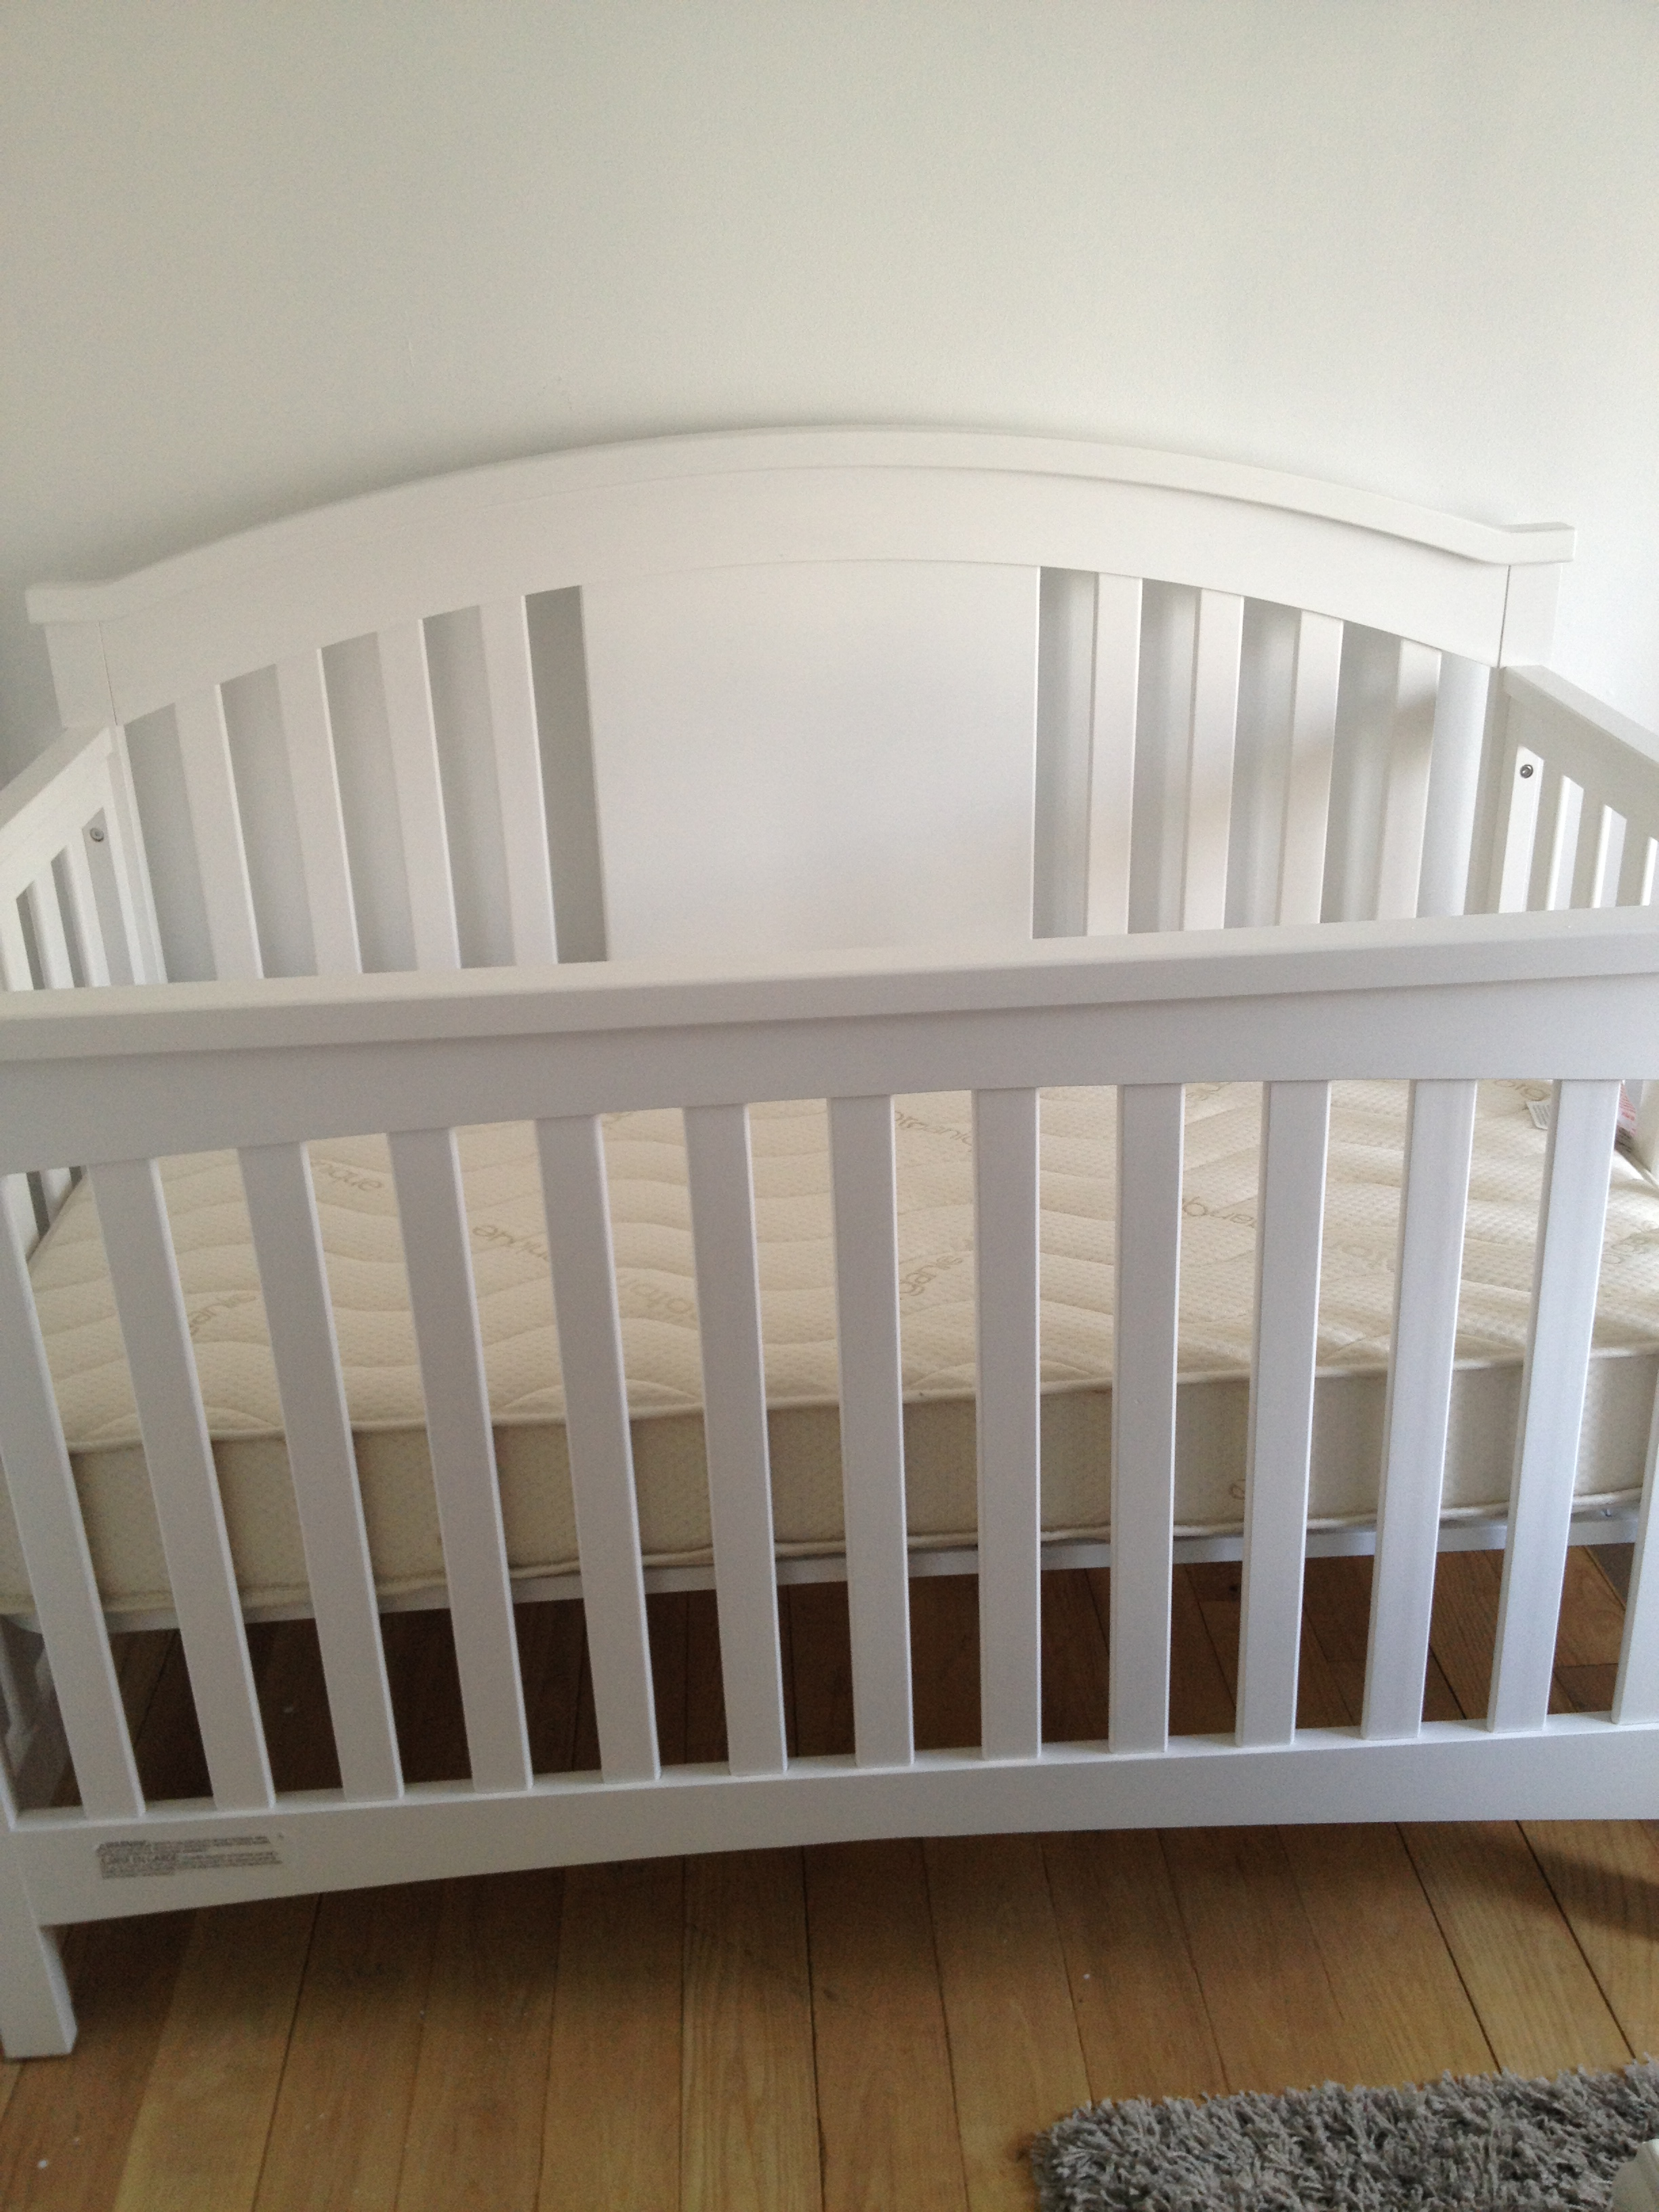 Crib for sale kijiji toronto - Crib